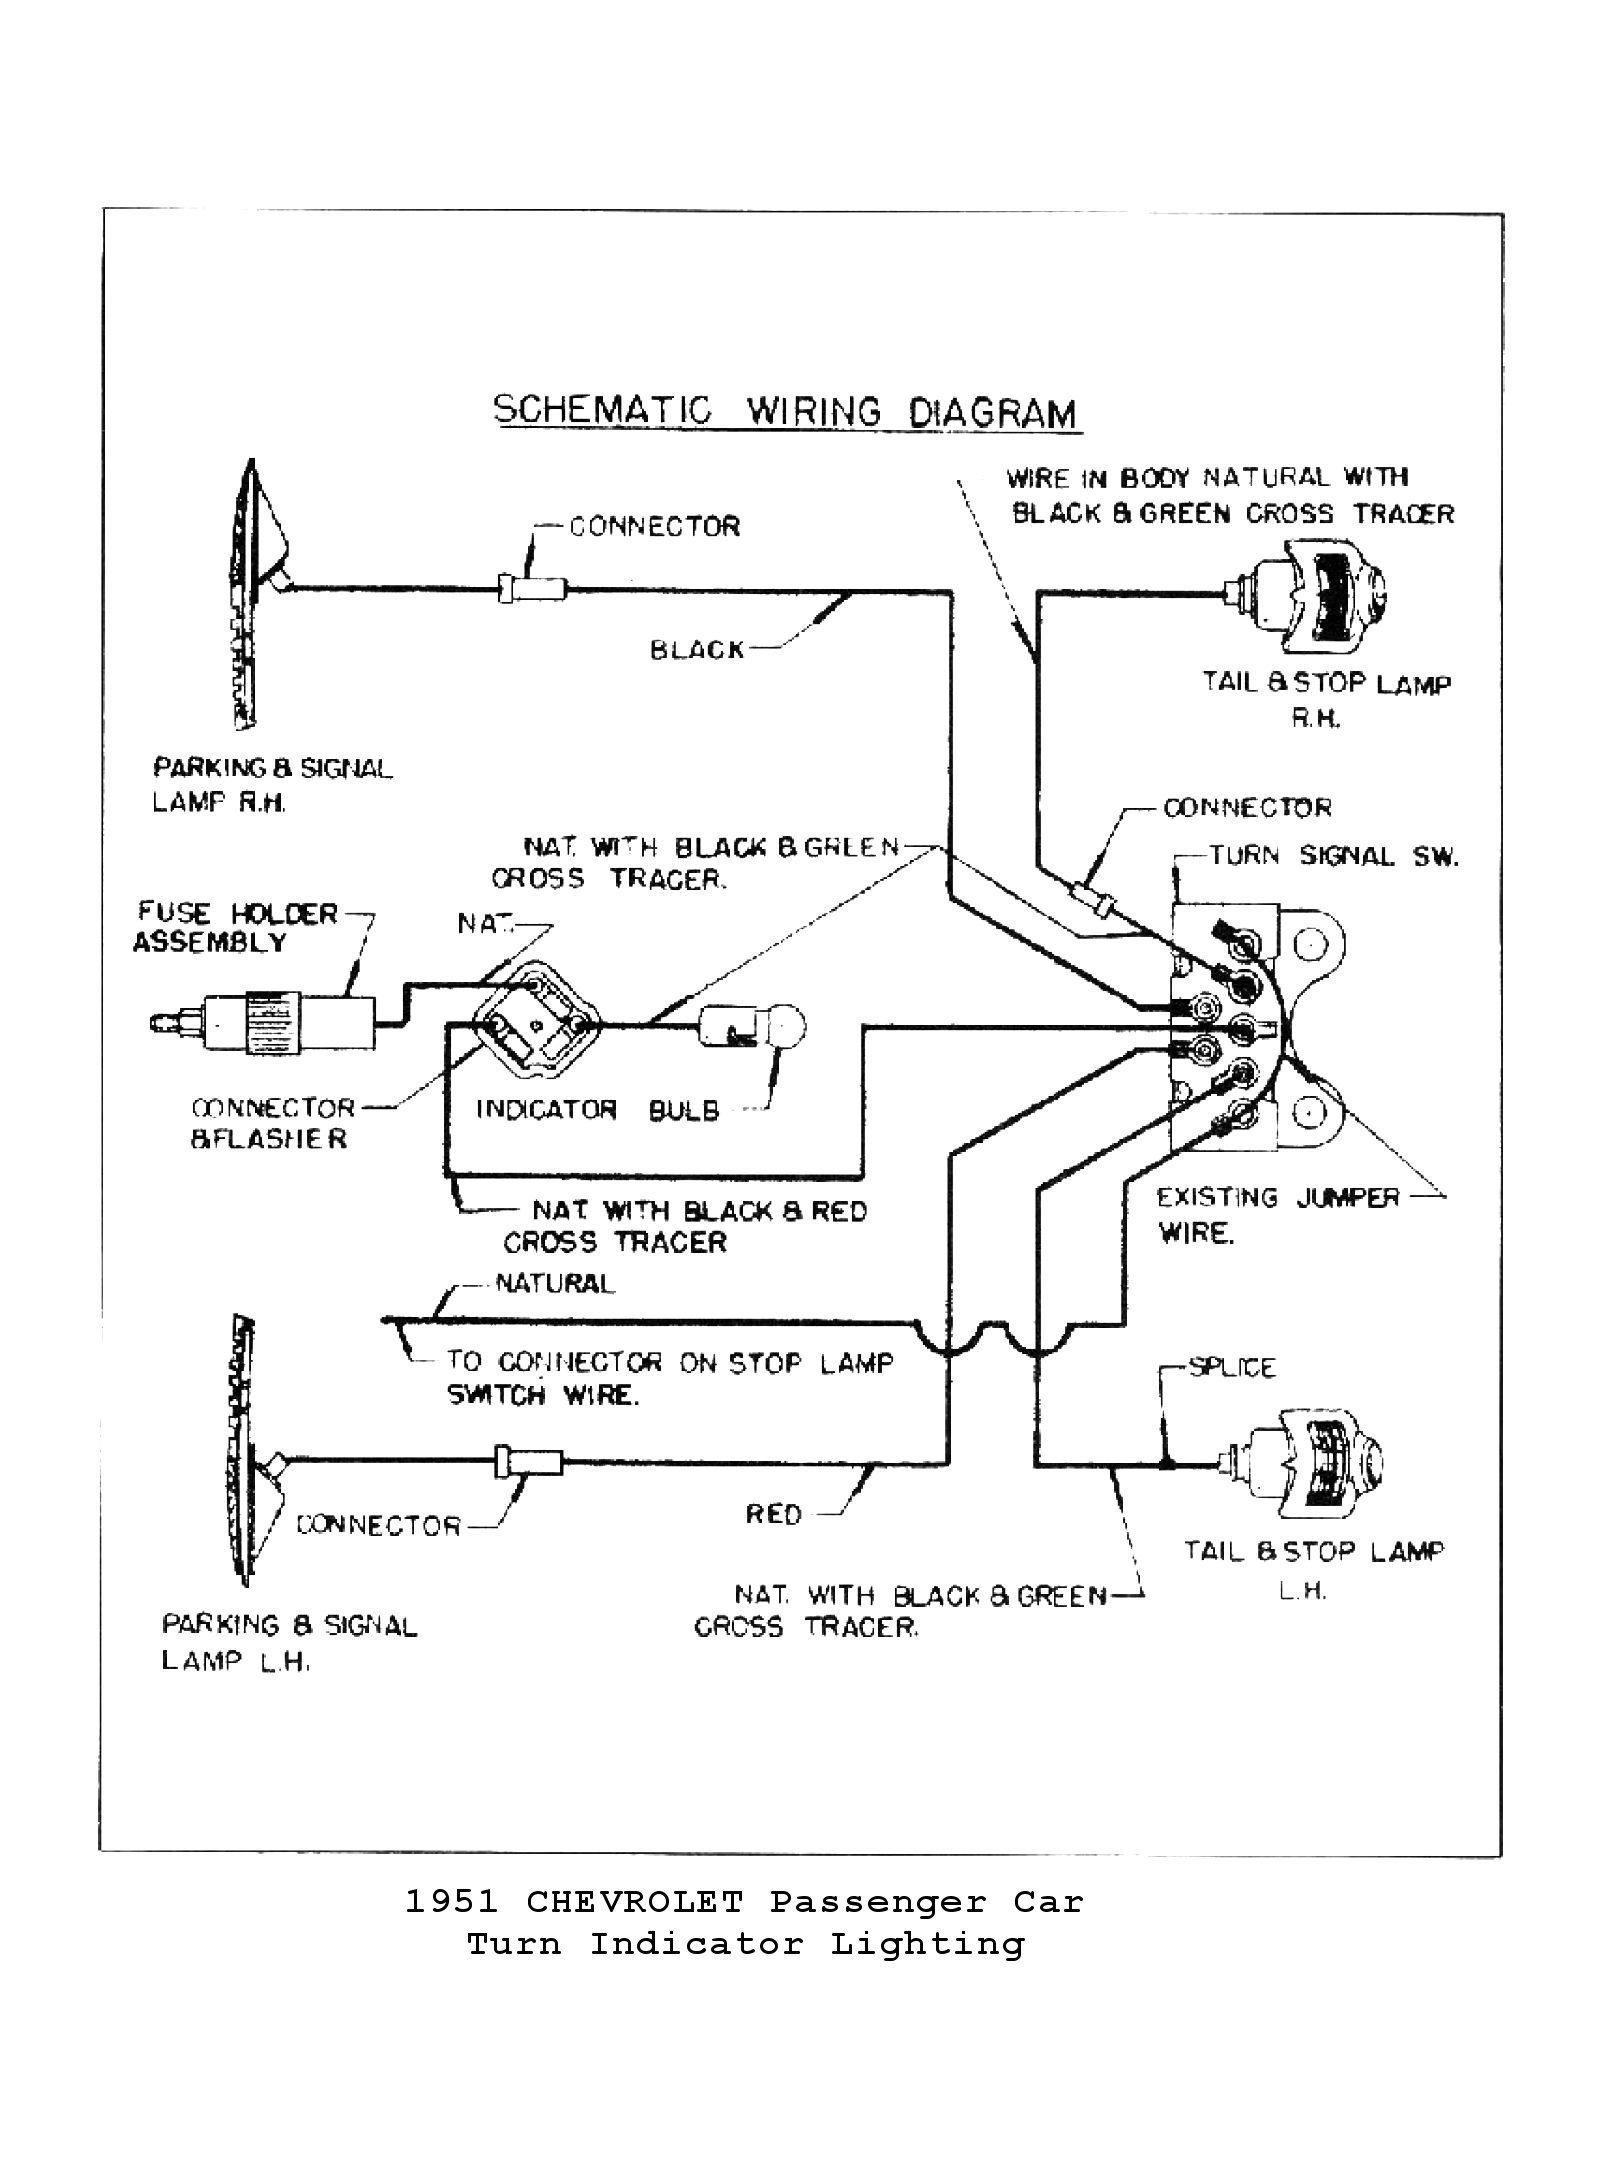 1952 Willys Wagon Wiring Diagram 1948 Jeep Truck Trusted Turn Signal Worksheet And U2022 1961 Pick Up